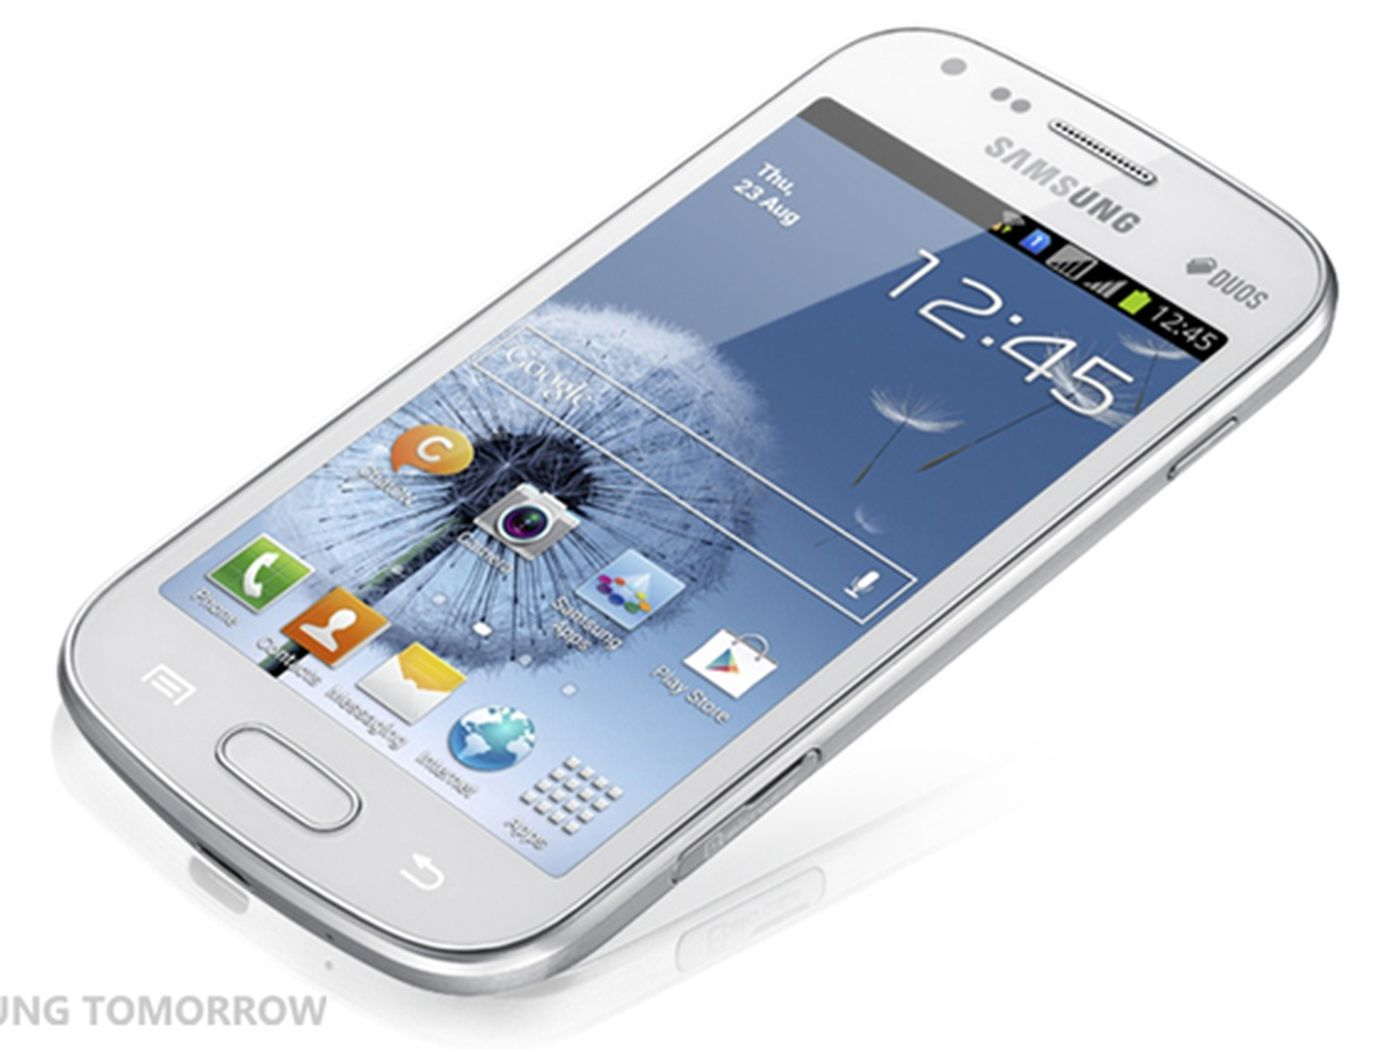 Samsung Announces Dual SIM Galaxy S Duos Available In Europe From September